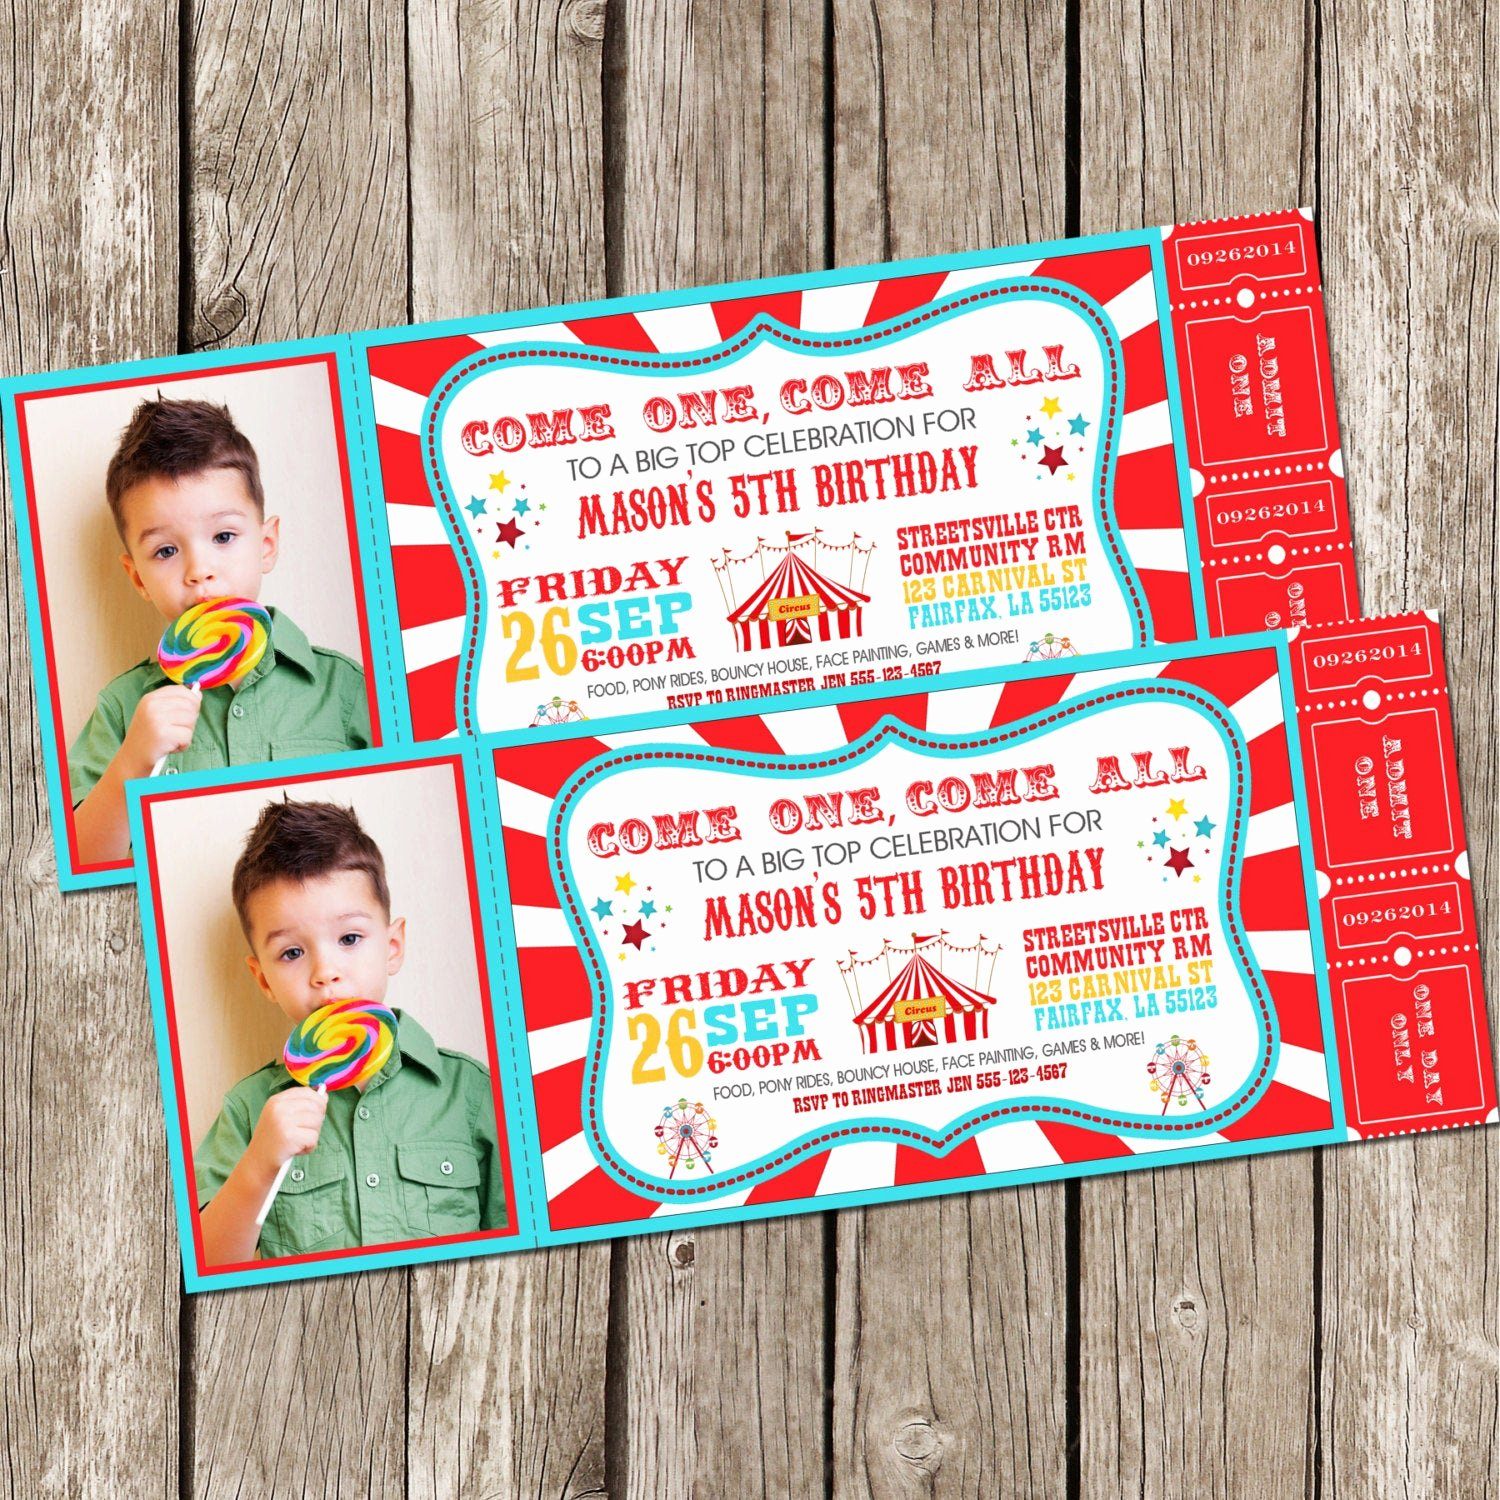 Carnival theme Party Invitations Fresh Vintage Circus Carnival Invitation Ticket Invitation